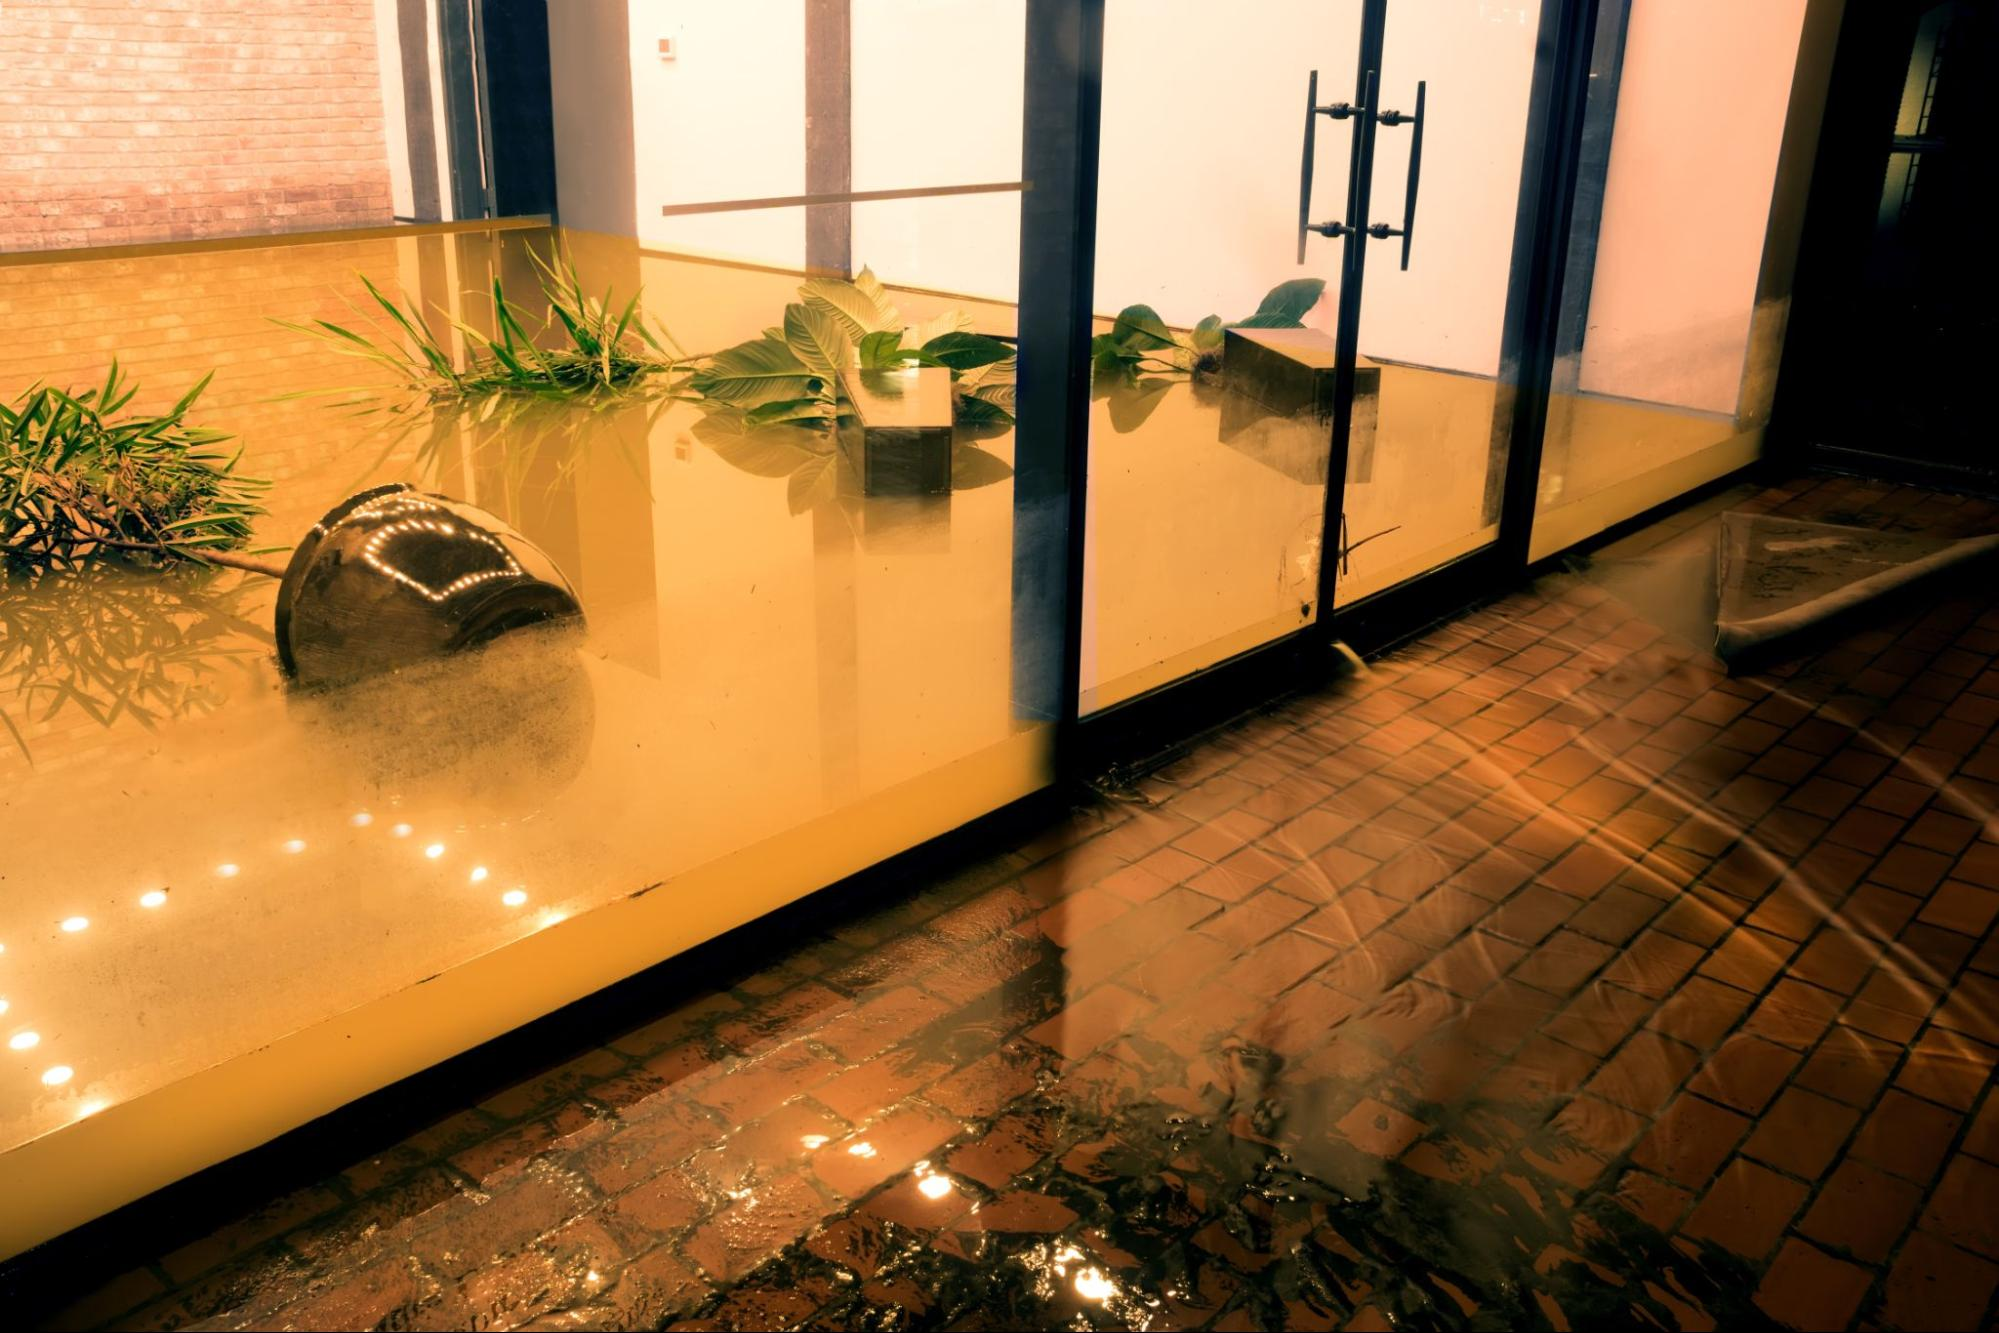 A flooded office after a hurricane with toppled potted plants